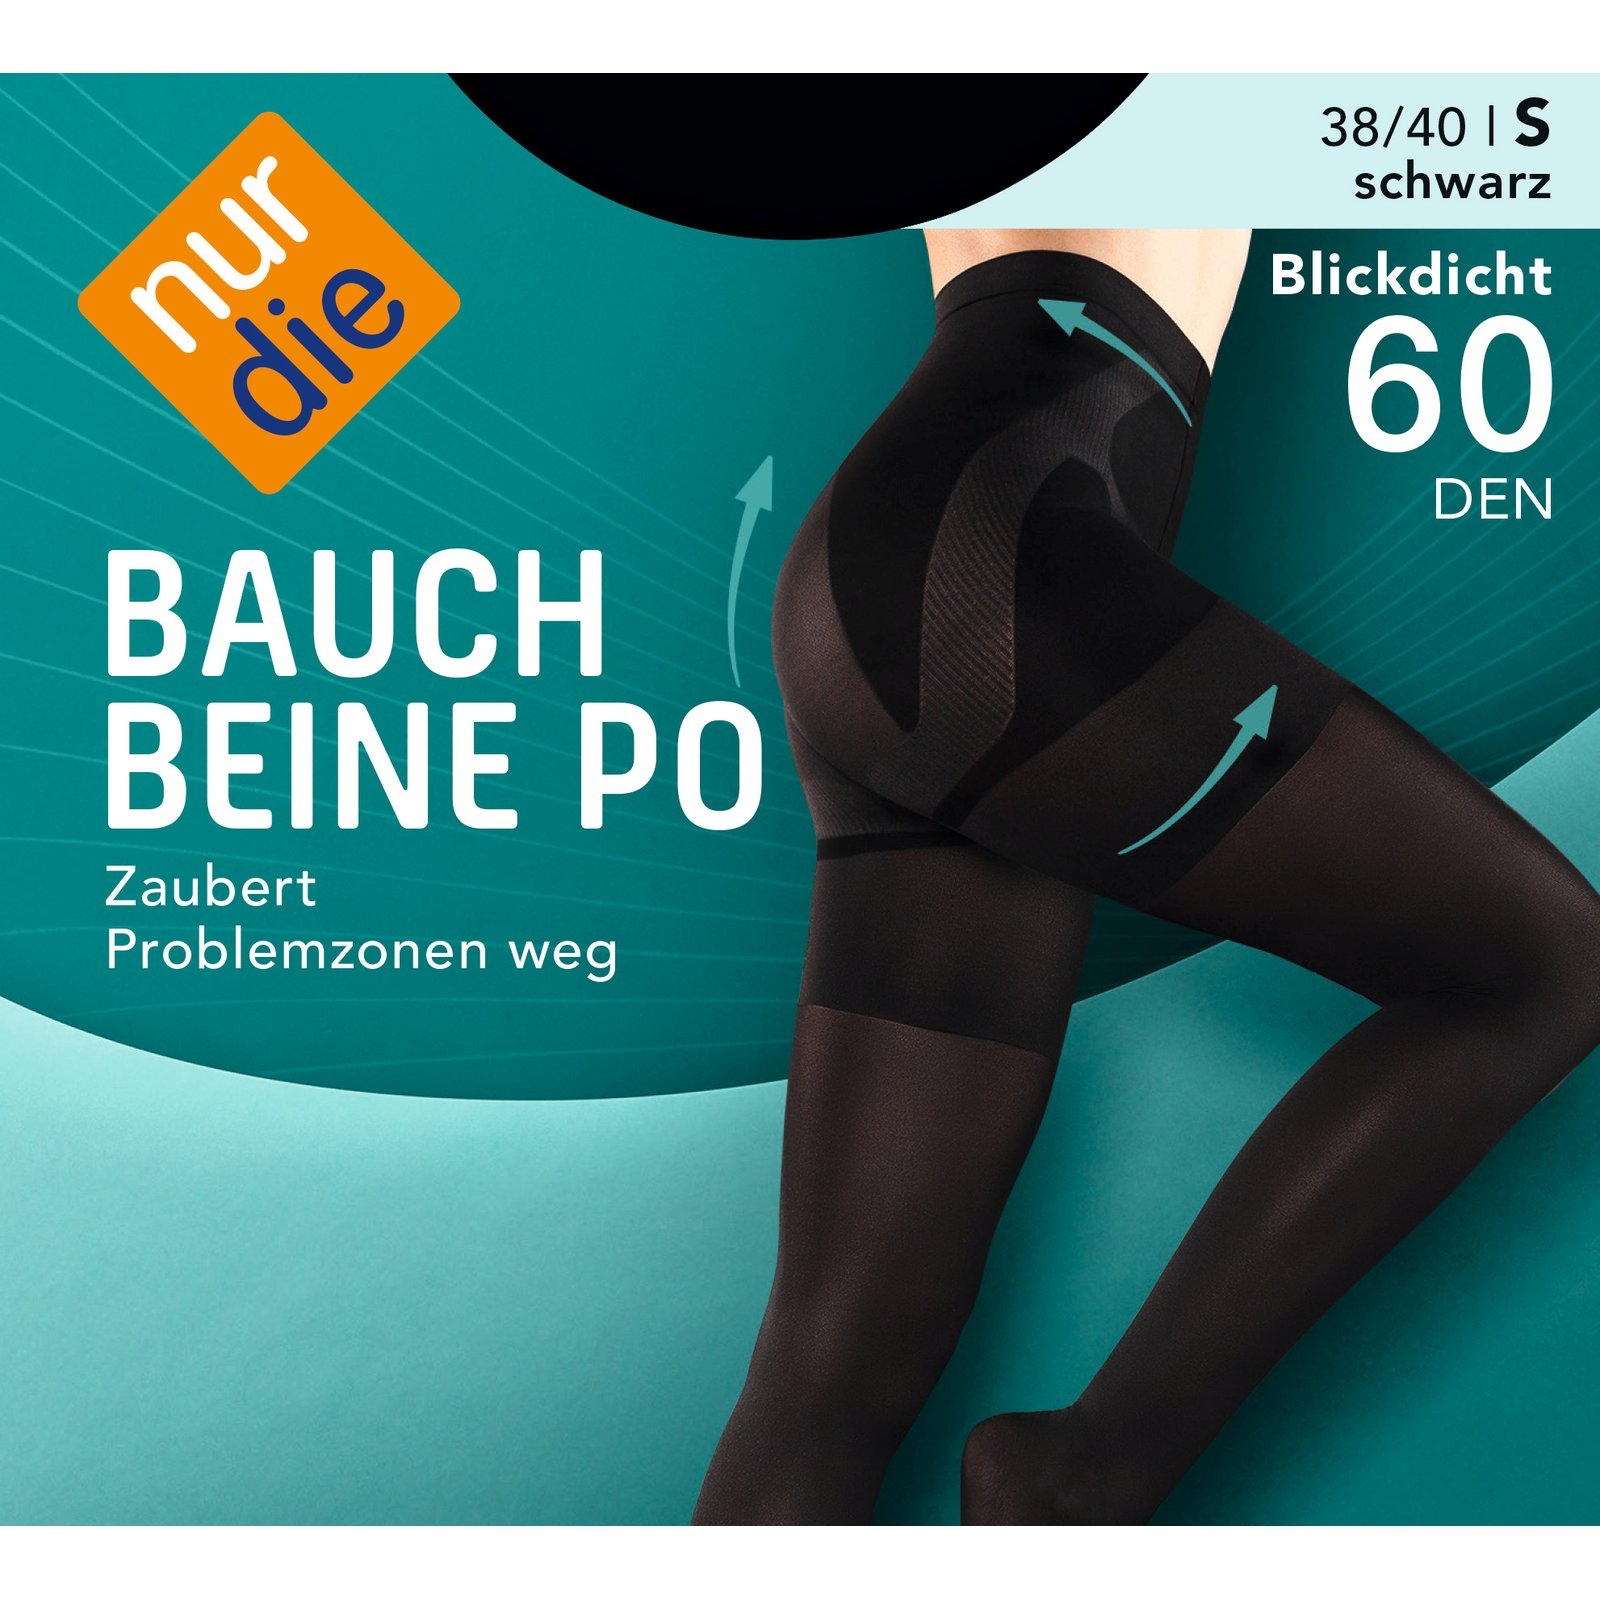 bauch beine po 60den feinstrumpfhose von nur die. Black Bedroom Furniture Sets. Home Design Ideas